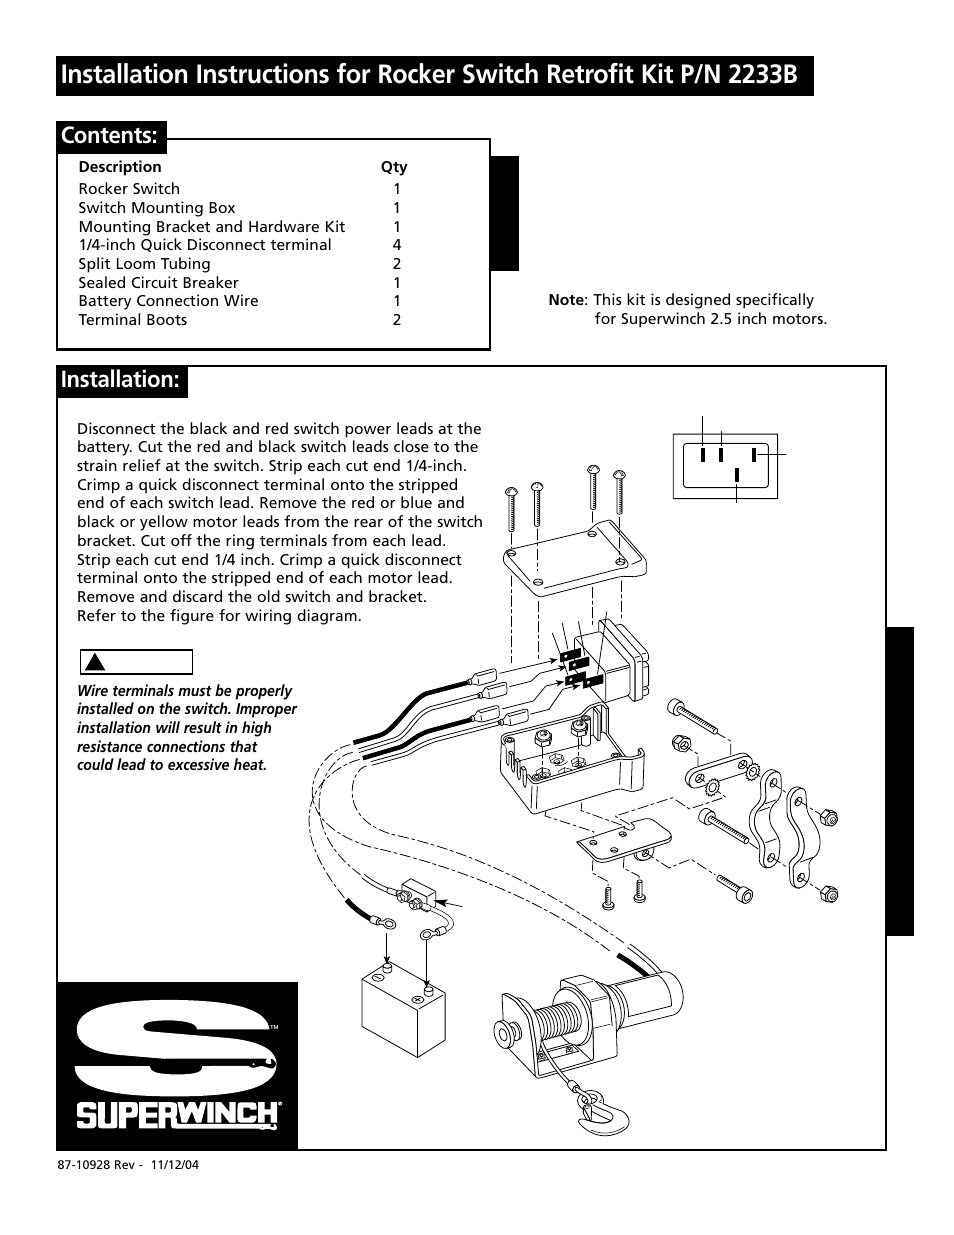 super winch rocker switch wiring diagram wiring solutions remote control winch item 61346 wiring-diagram superwinch rocker switch 2233b user manual 6 pages superwinch circuit breaker beautiful valuable t1500 rocker switch wiring diagram